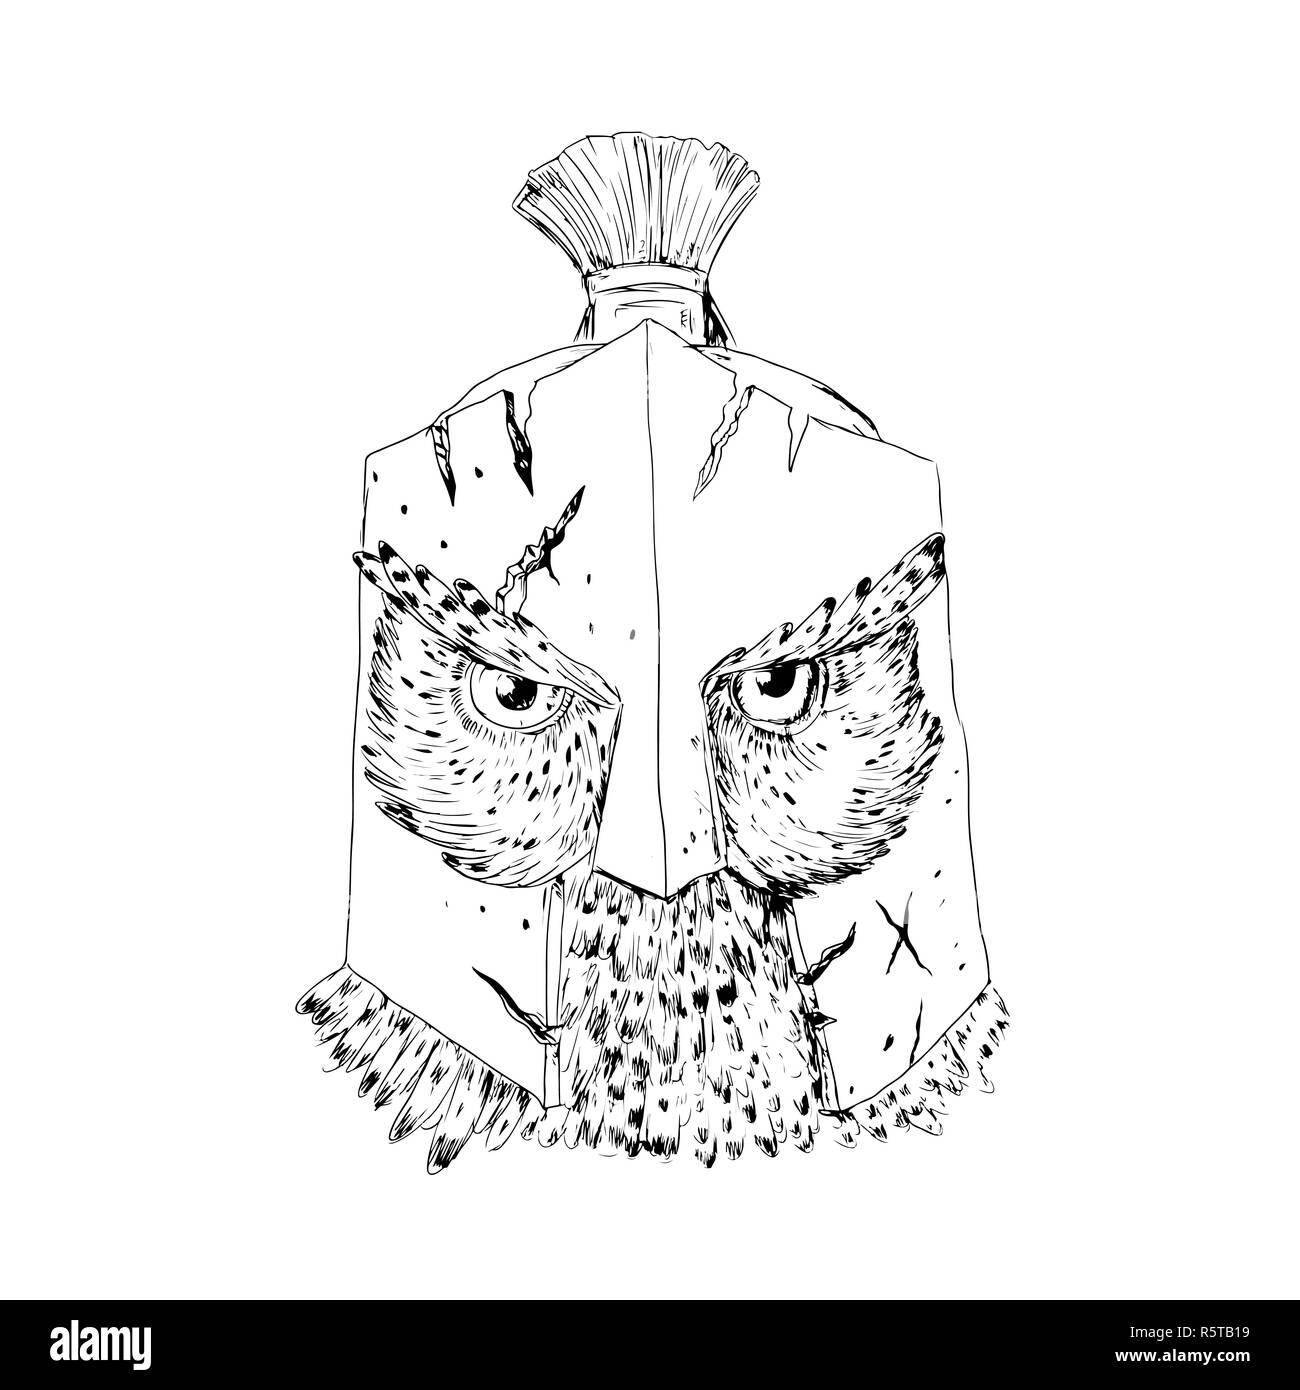 Horned Owl Spartan Helmet Drawing Stock Photo 227343573 Alamy